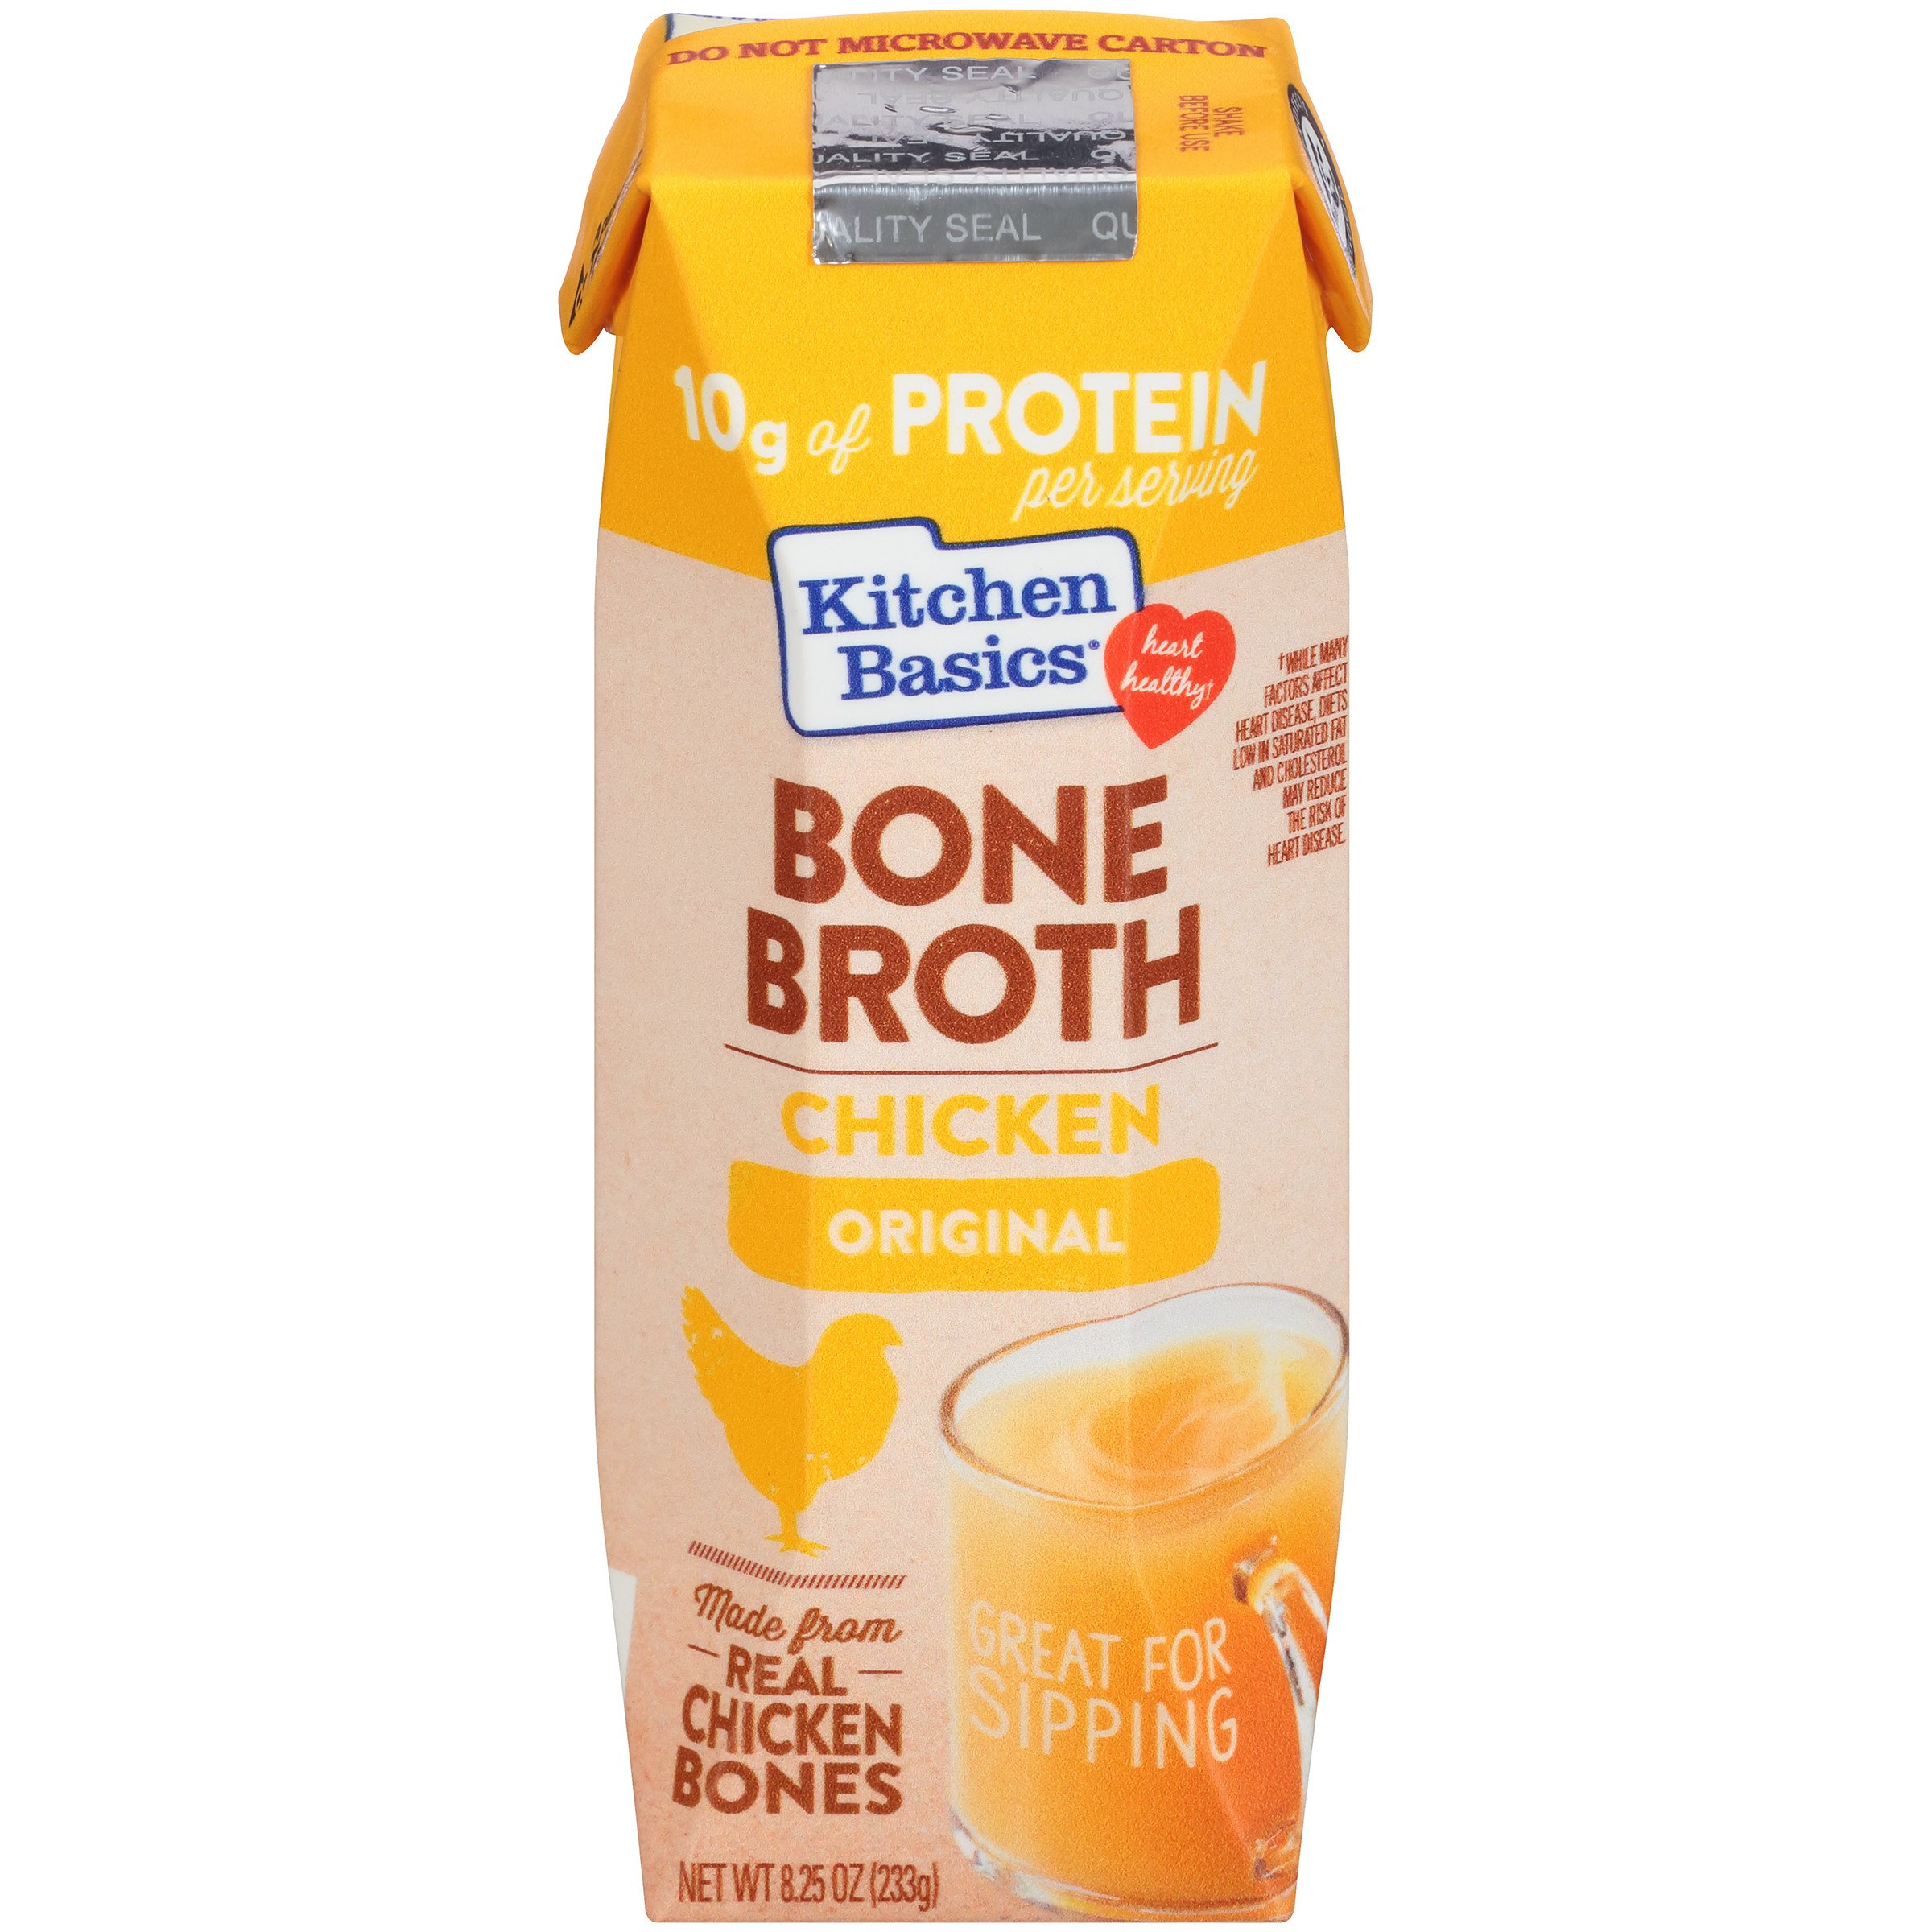 Kitchen Basics Original Chicken Bone Broth, 8.25 oz (Case of 12)